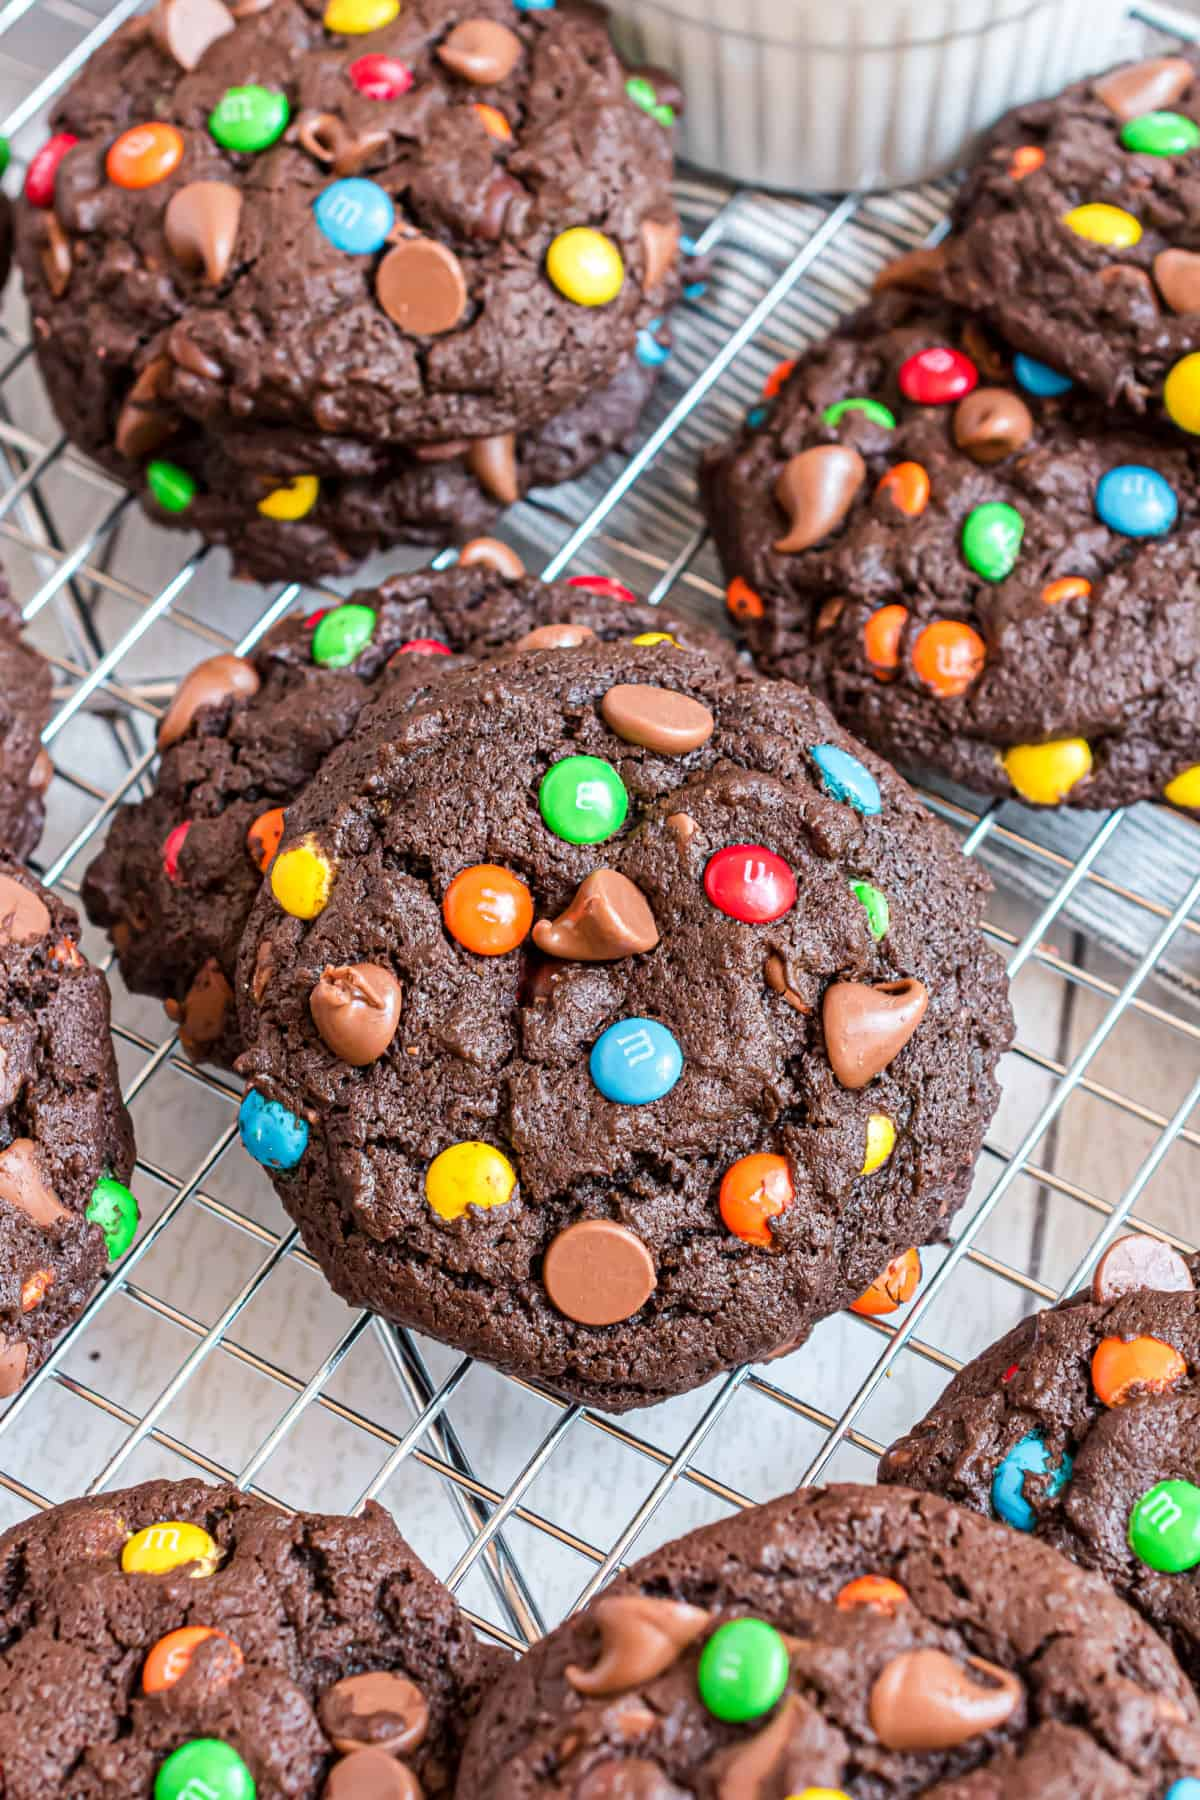 Stacks of chocolate cookies with M&M's on wire cooling rack.